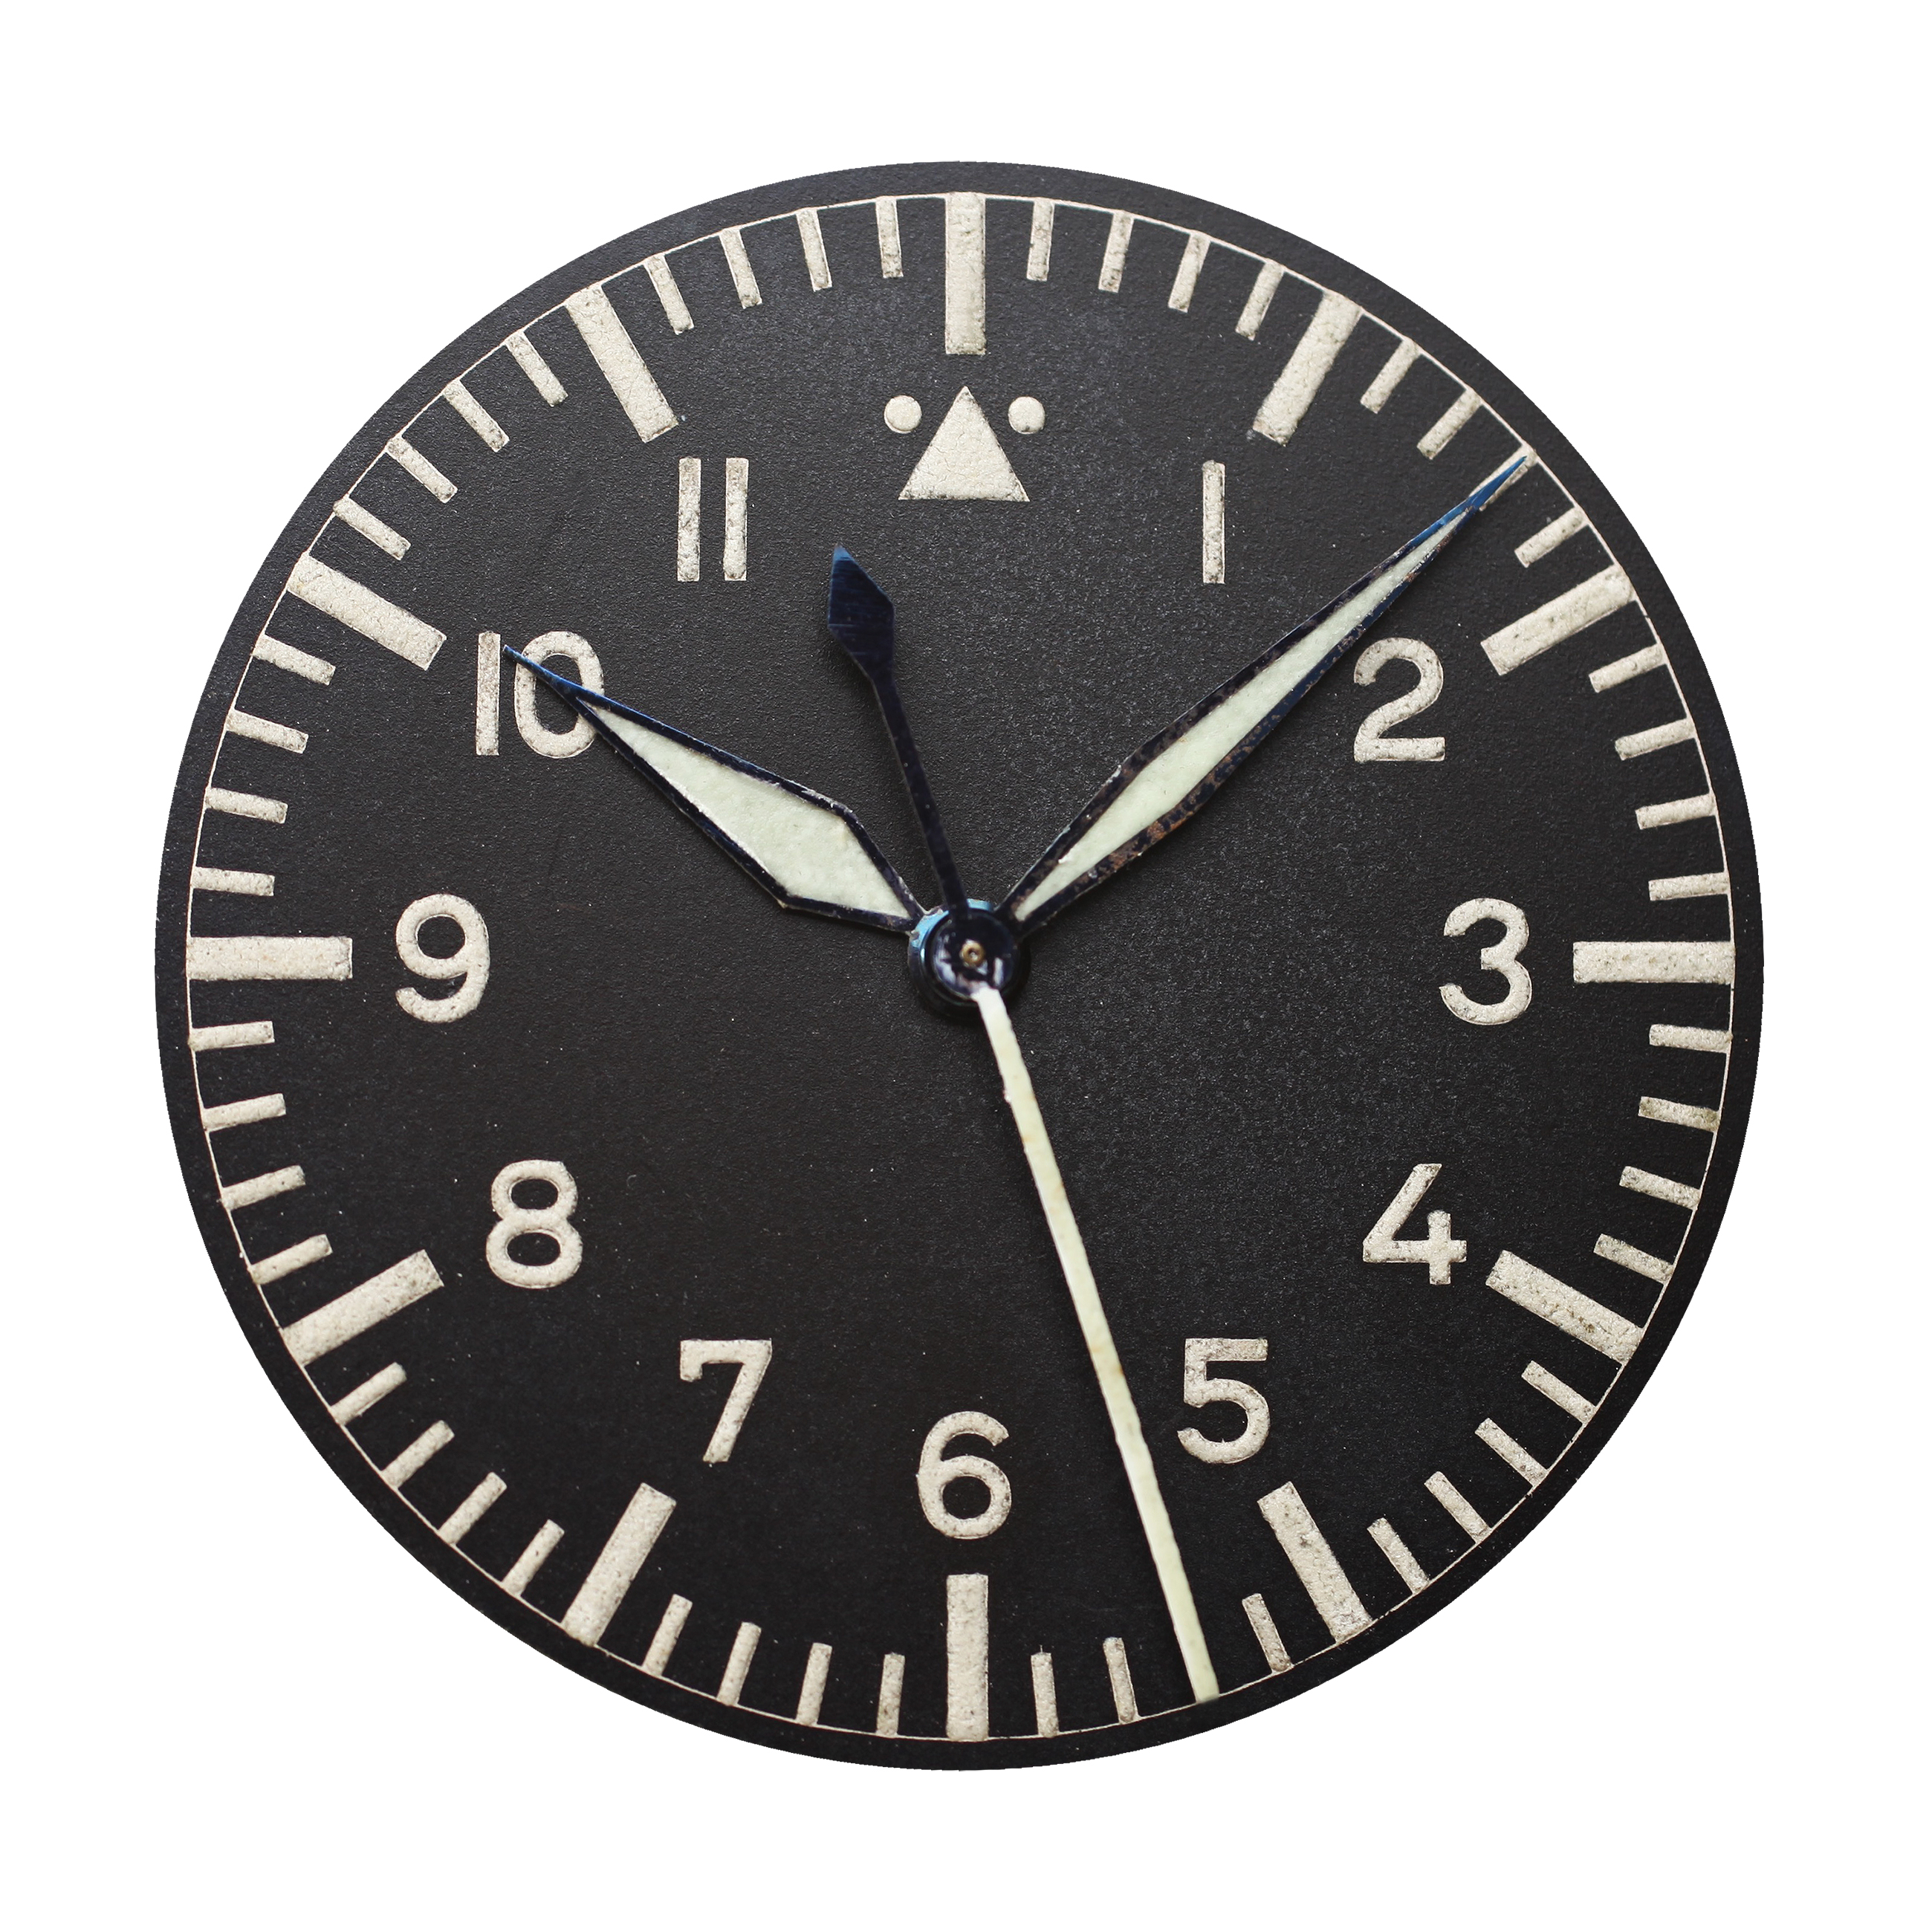 flieger_1940_dial_historical_version_a_2600